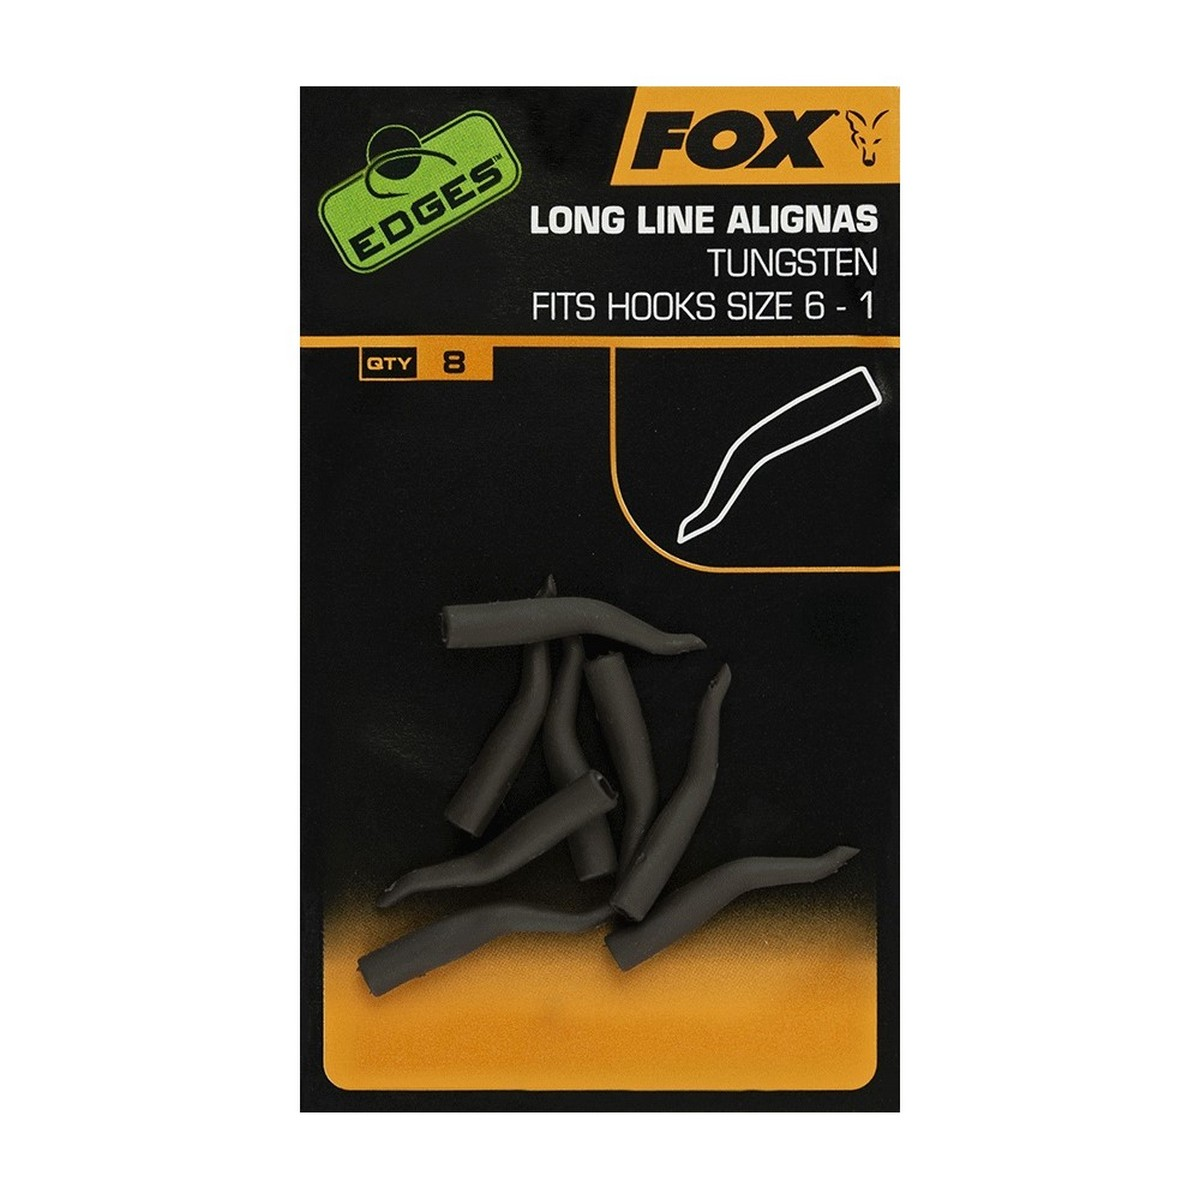 Алайнери Fox Edges Long Line Alignas Tungsten